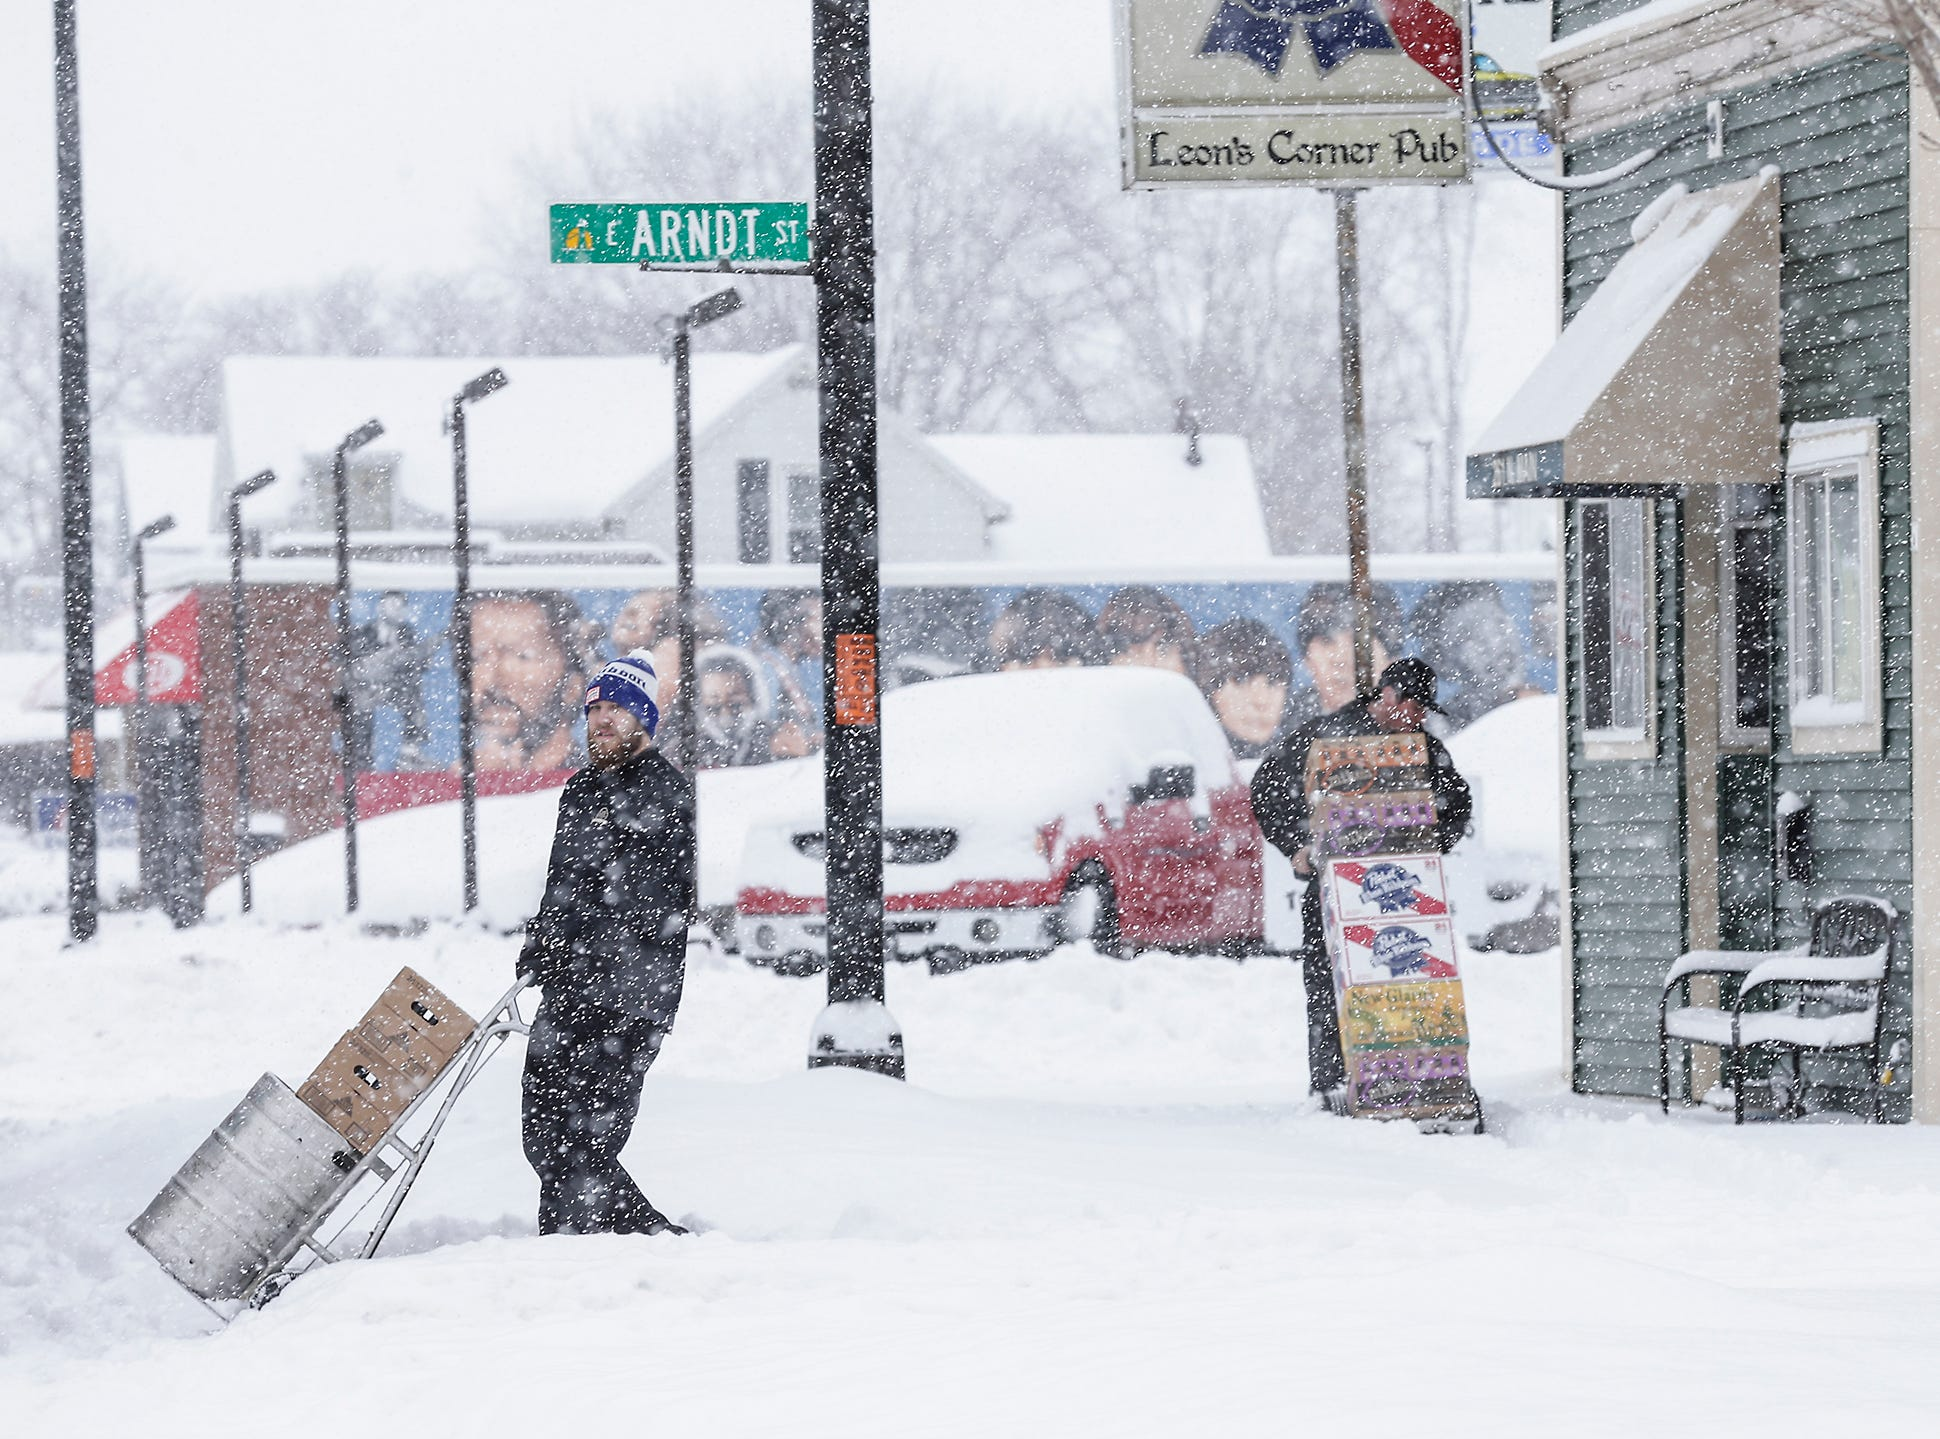 Travis Rasor and Sam Cruz of Lee Beverage deliver an order of beer during a winter storm Tuesday, February 12, 2019 to Leons Corner Pub on south north Main Street in Fond du Lac, Wis. A winter storm warning was issued for the area.